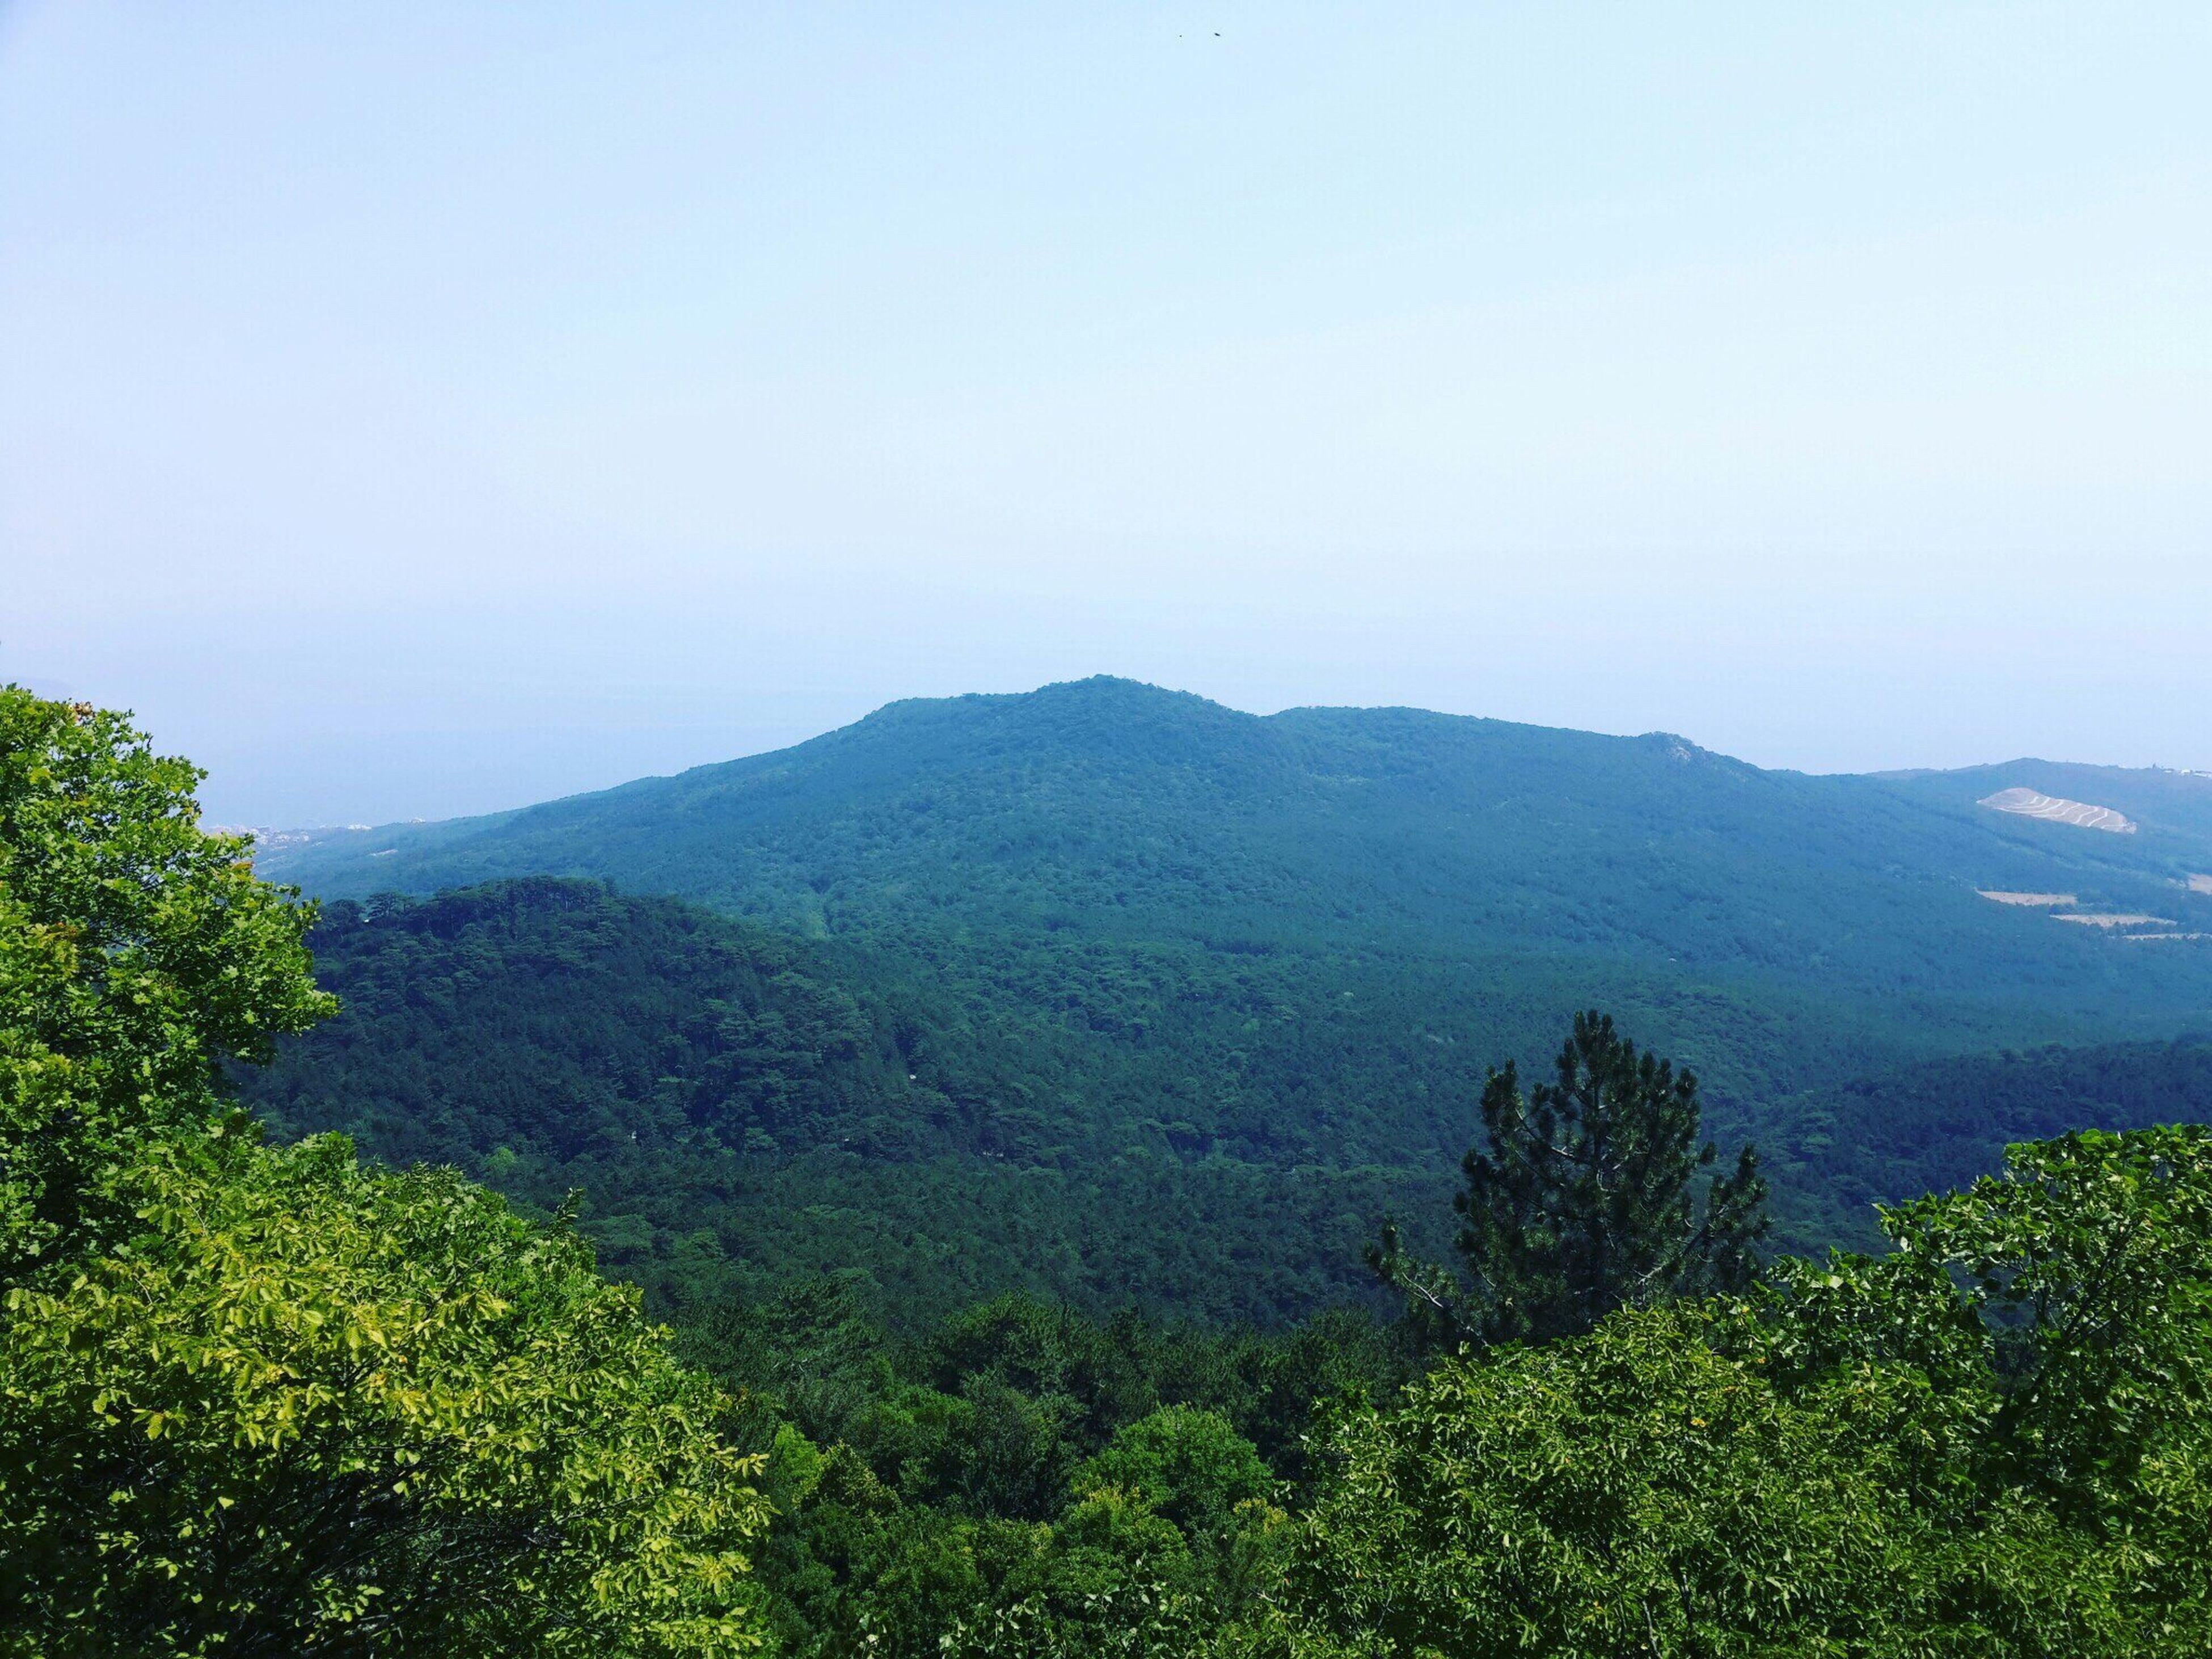 mountain, tree, scenics, tranquil scene, copy space, clear sky, tranquility, beauty in nature, mountain range, nature, growth, non-urban scene, green color, lush foliage, blue, day, majestic, outdoors, treetop, no people, sky, distant, green, valley, vacations, remote, tourism, mist